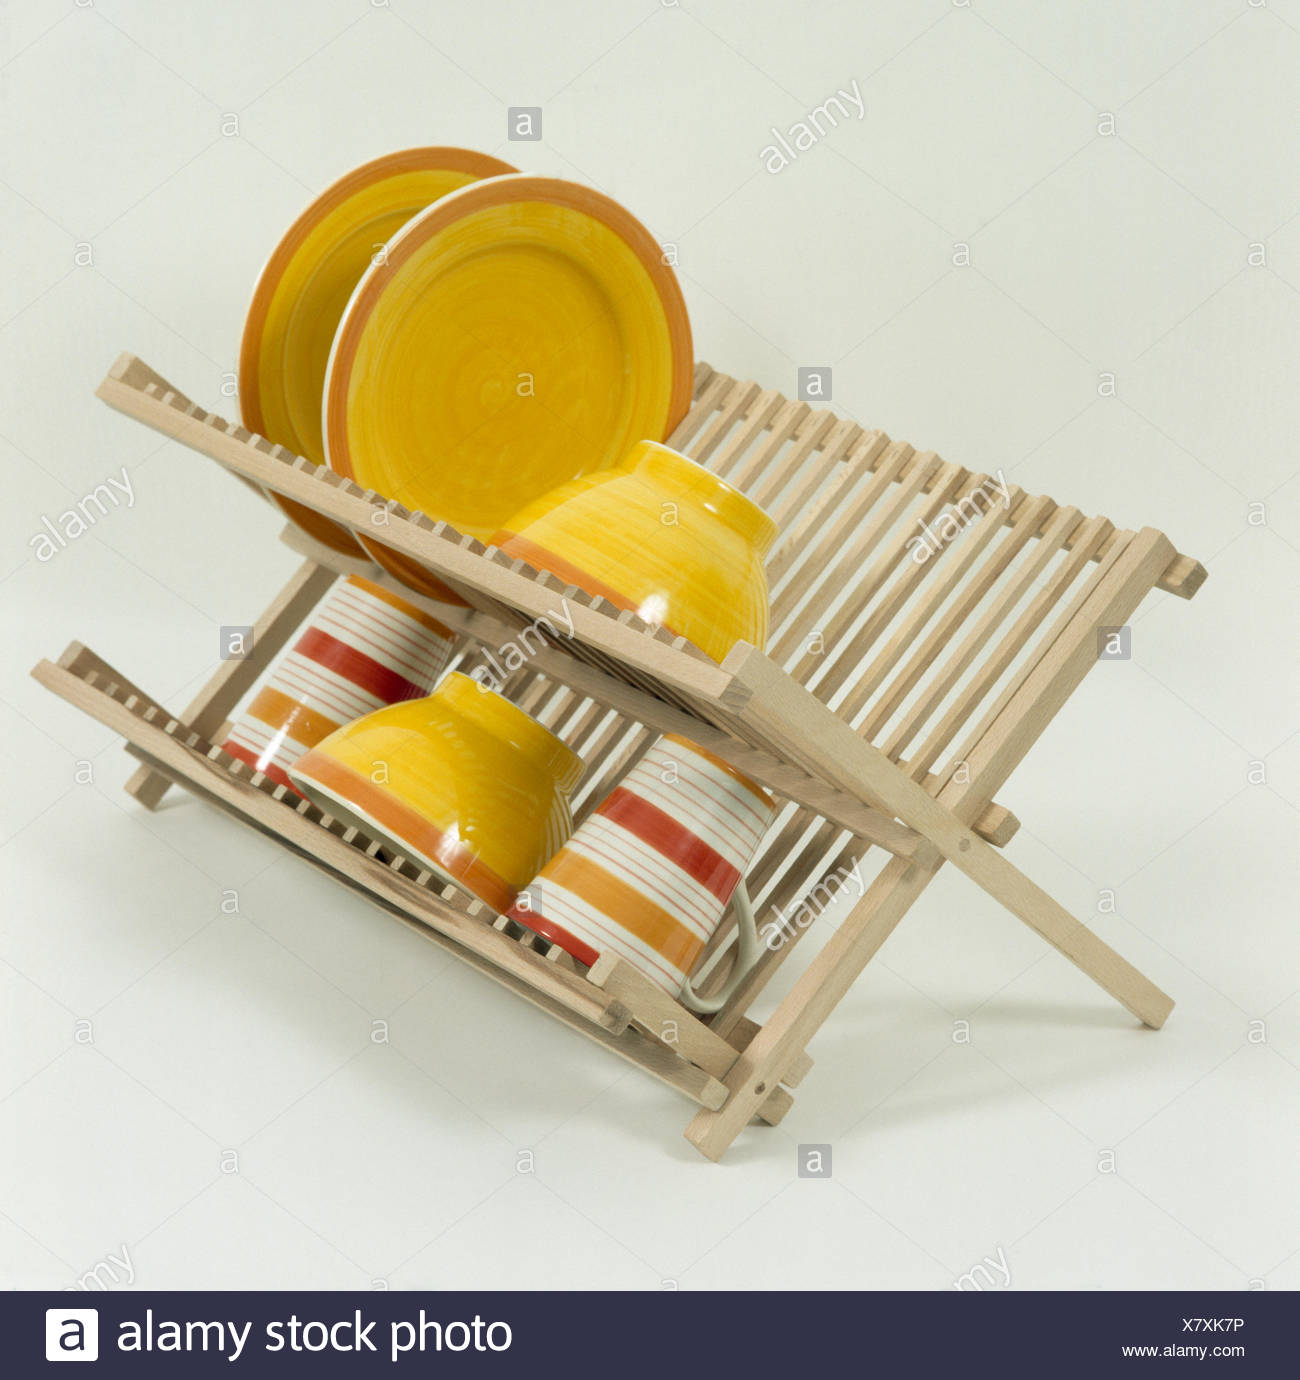 Plates Rack Stock Photos & Plates Rack Stock Images - Alamy